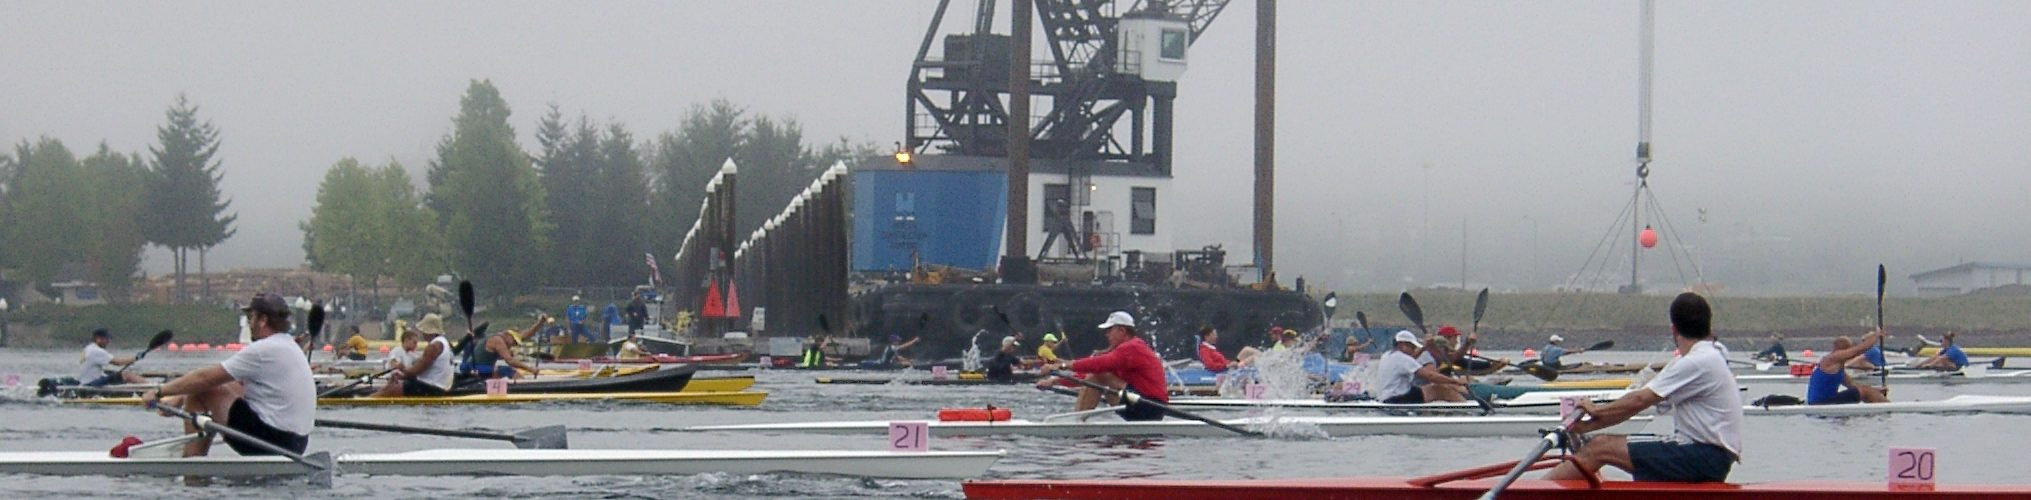 Large group of rowers and paddlers race past industrial crane